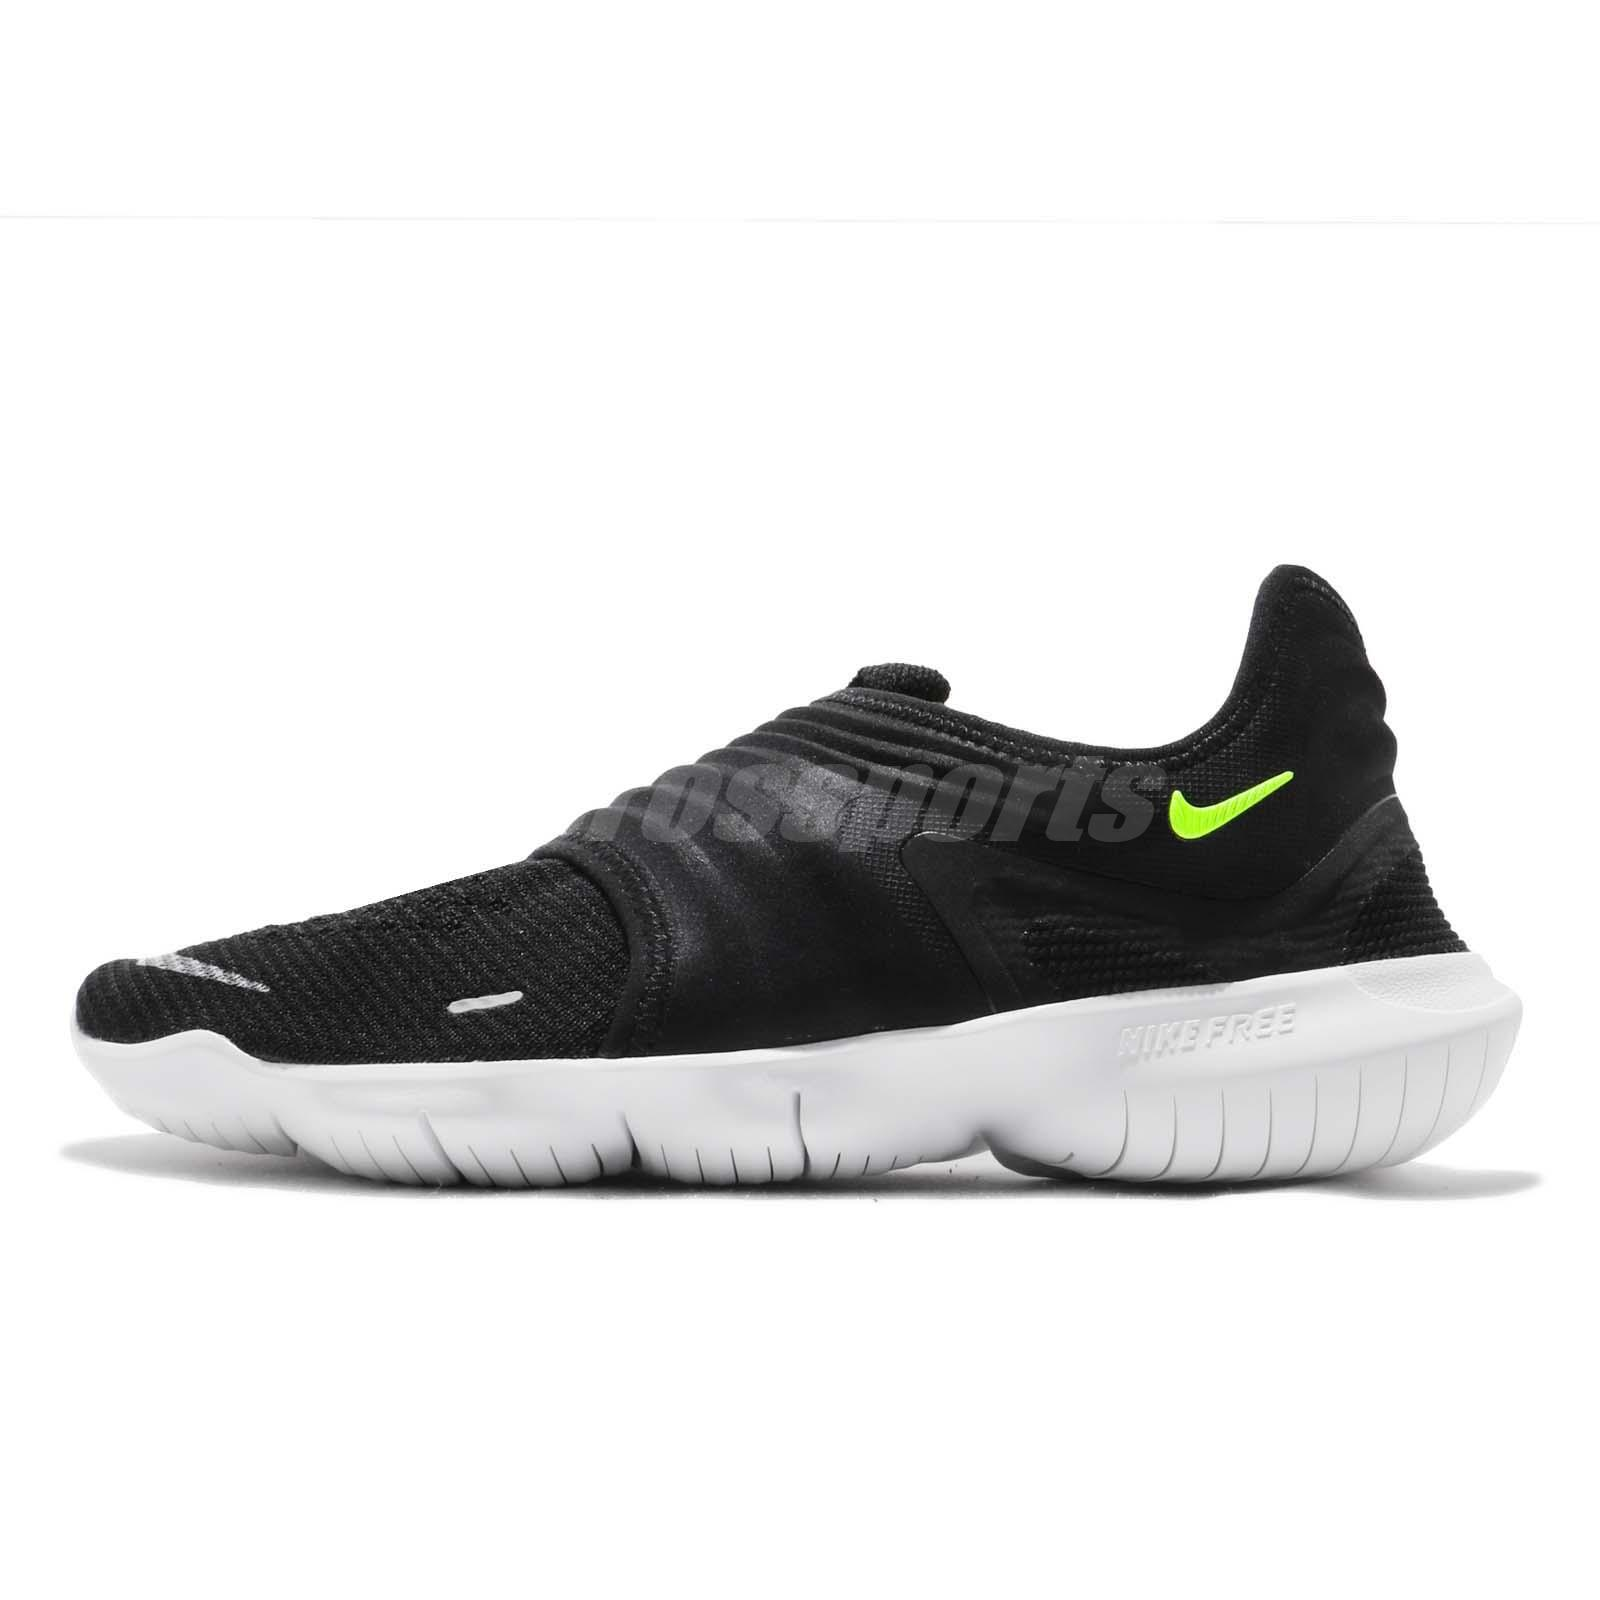 f978911b2428 Details about Nike Free RN Flyknit 3.0 Black Volt White Men Running Shoes  Sneakers AQ5707-001